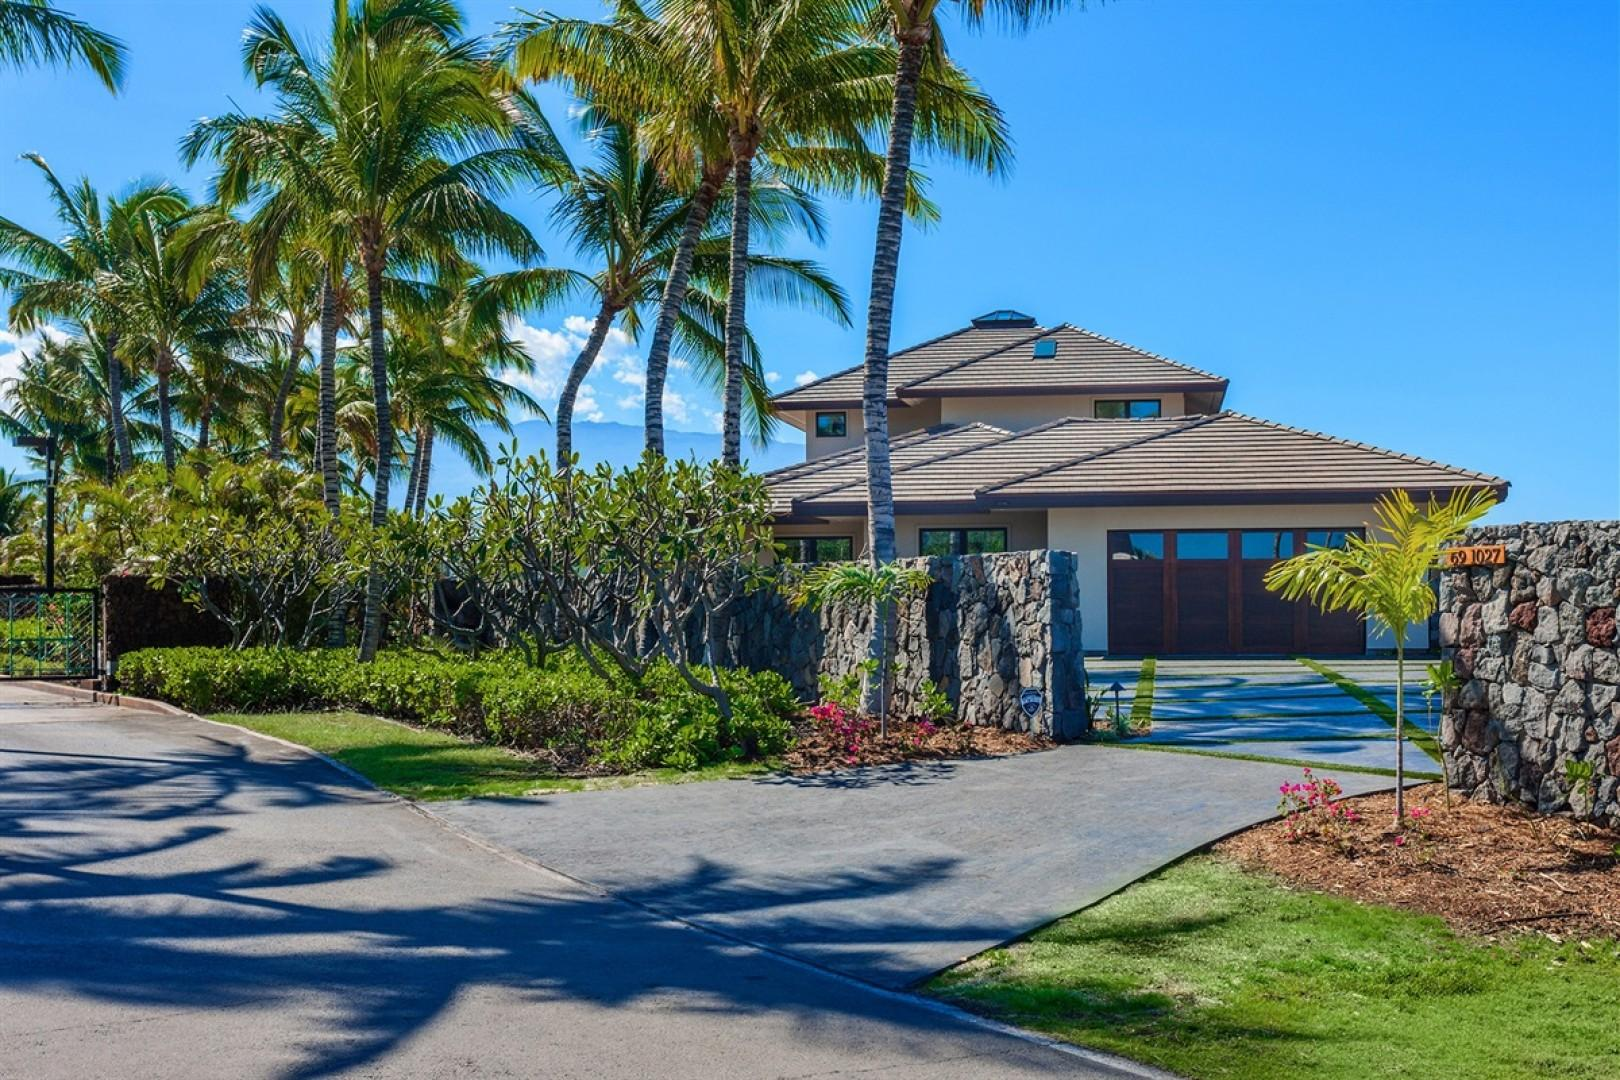 View of the driveway and home from the street within the gated community.